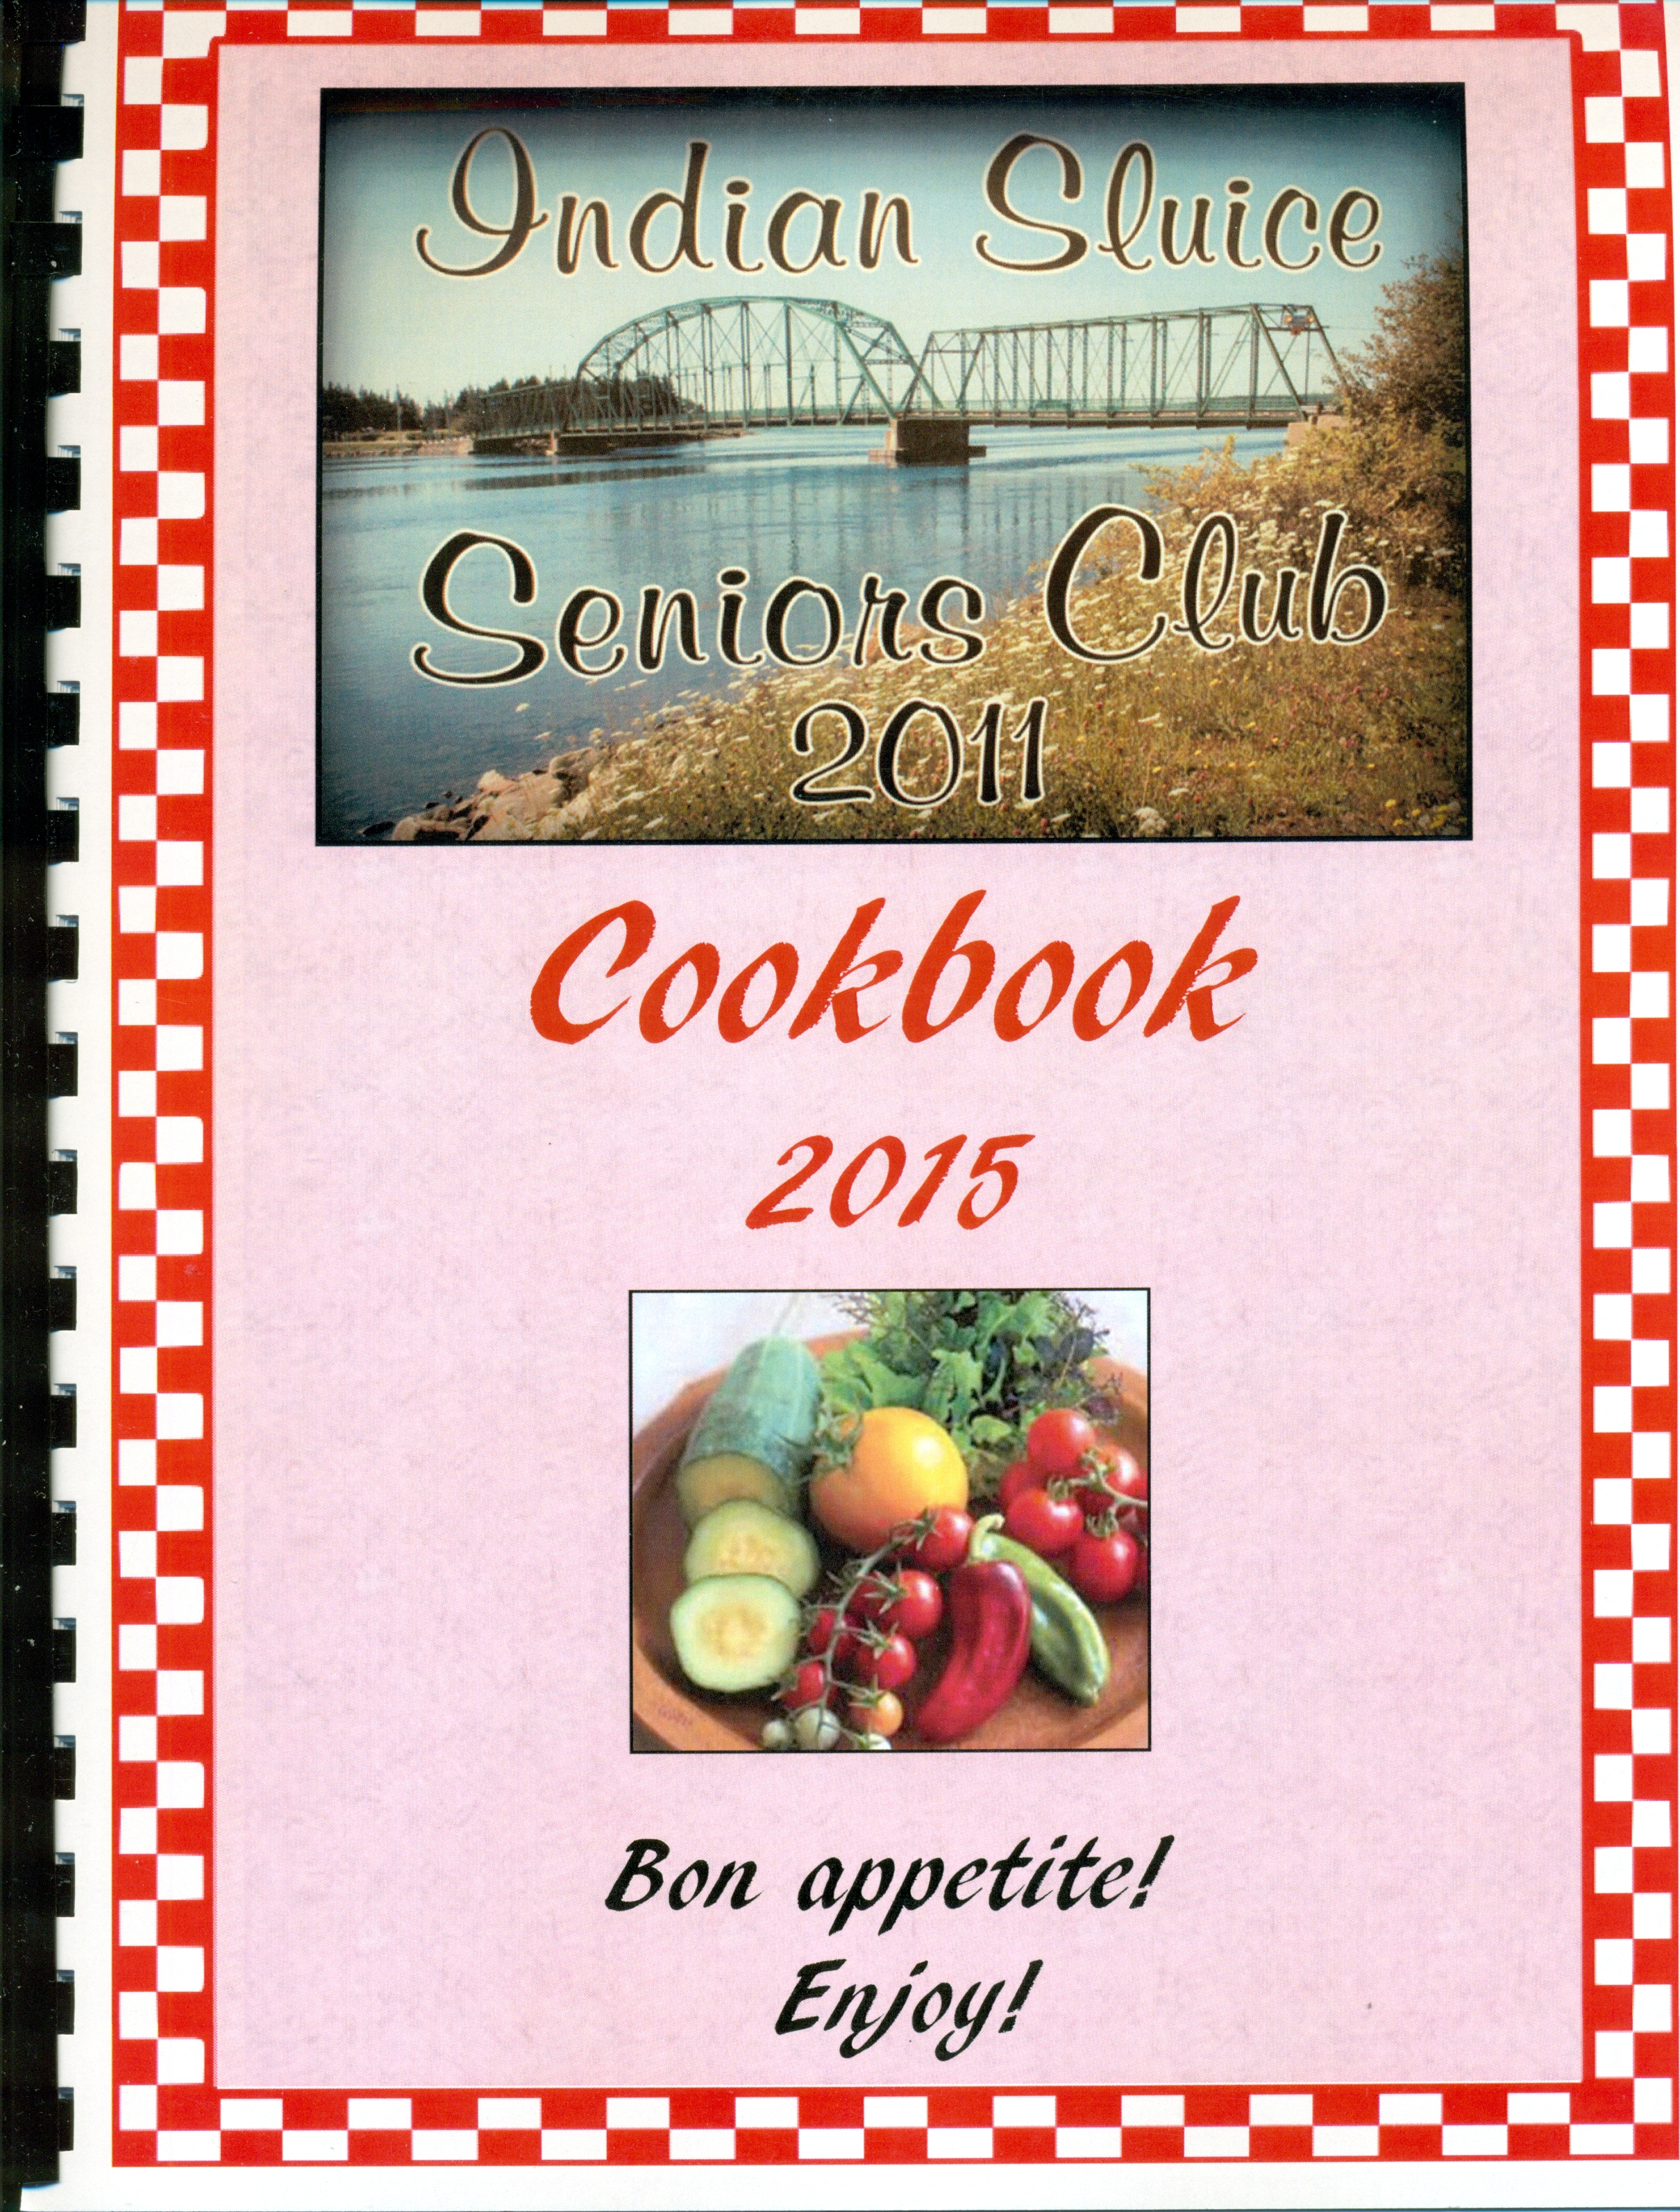 Indian Sluice Cookbook